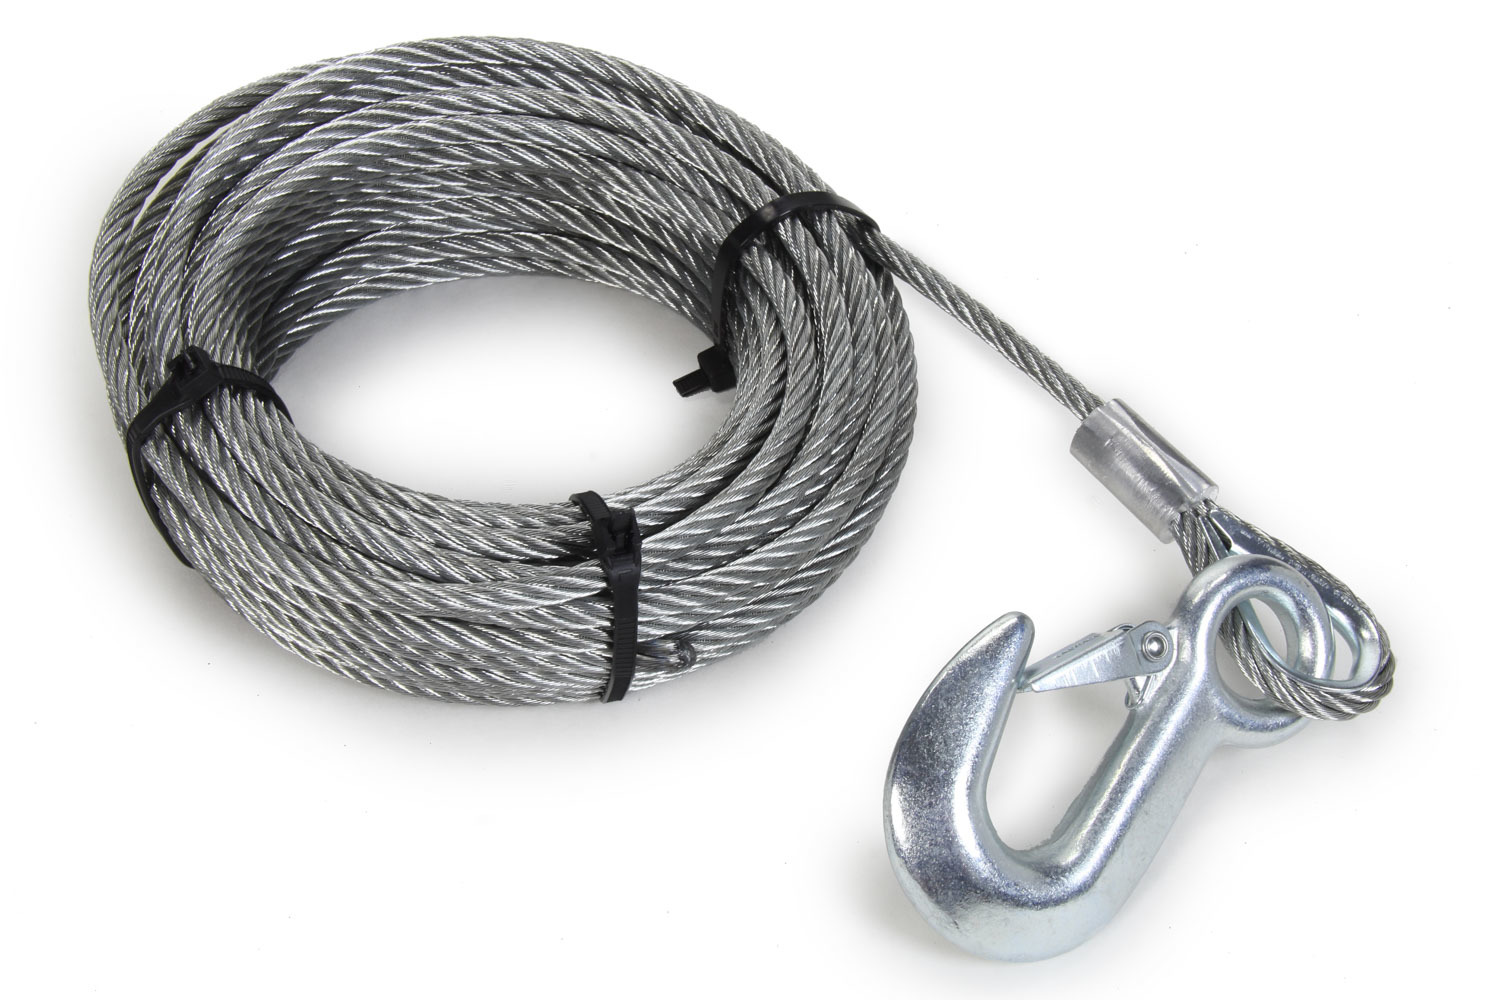 Reese 7/32in x 50ft Cable